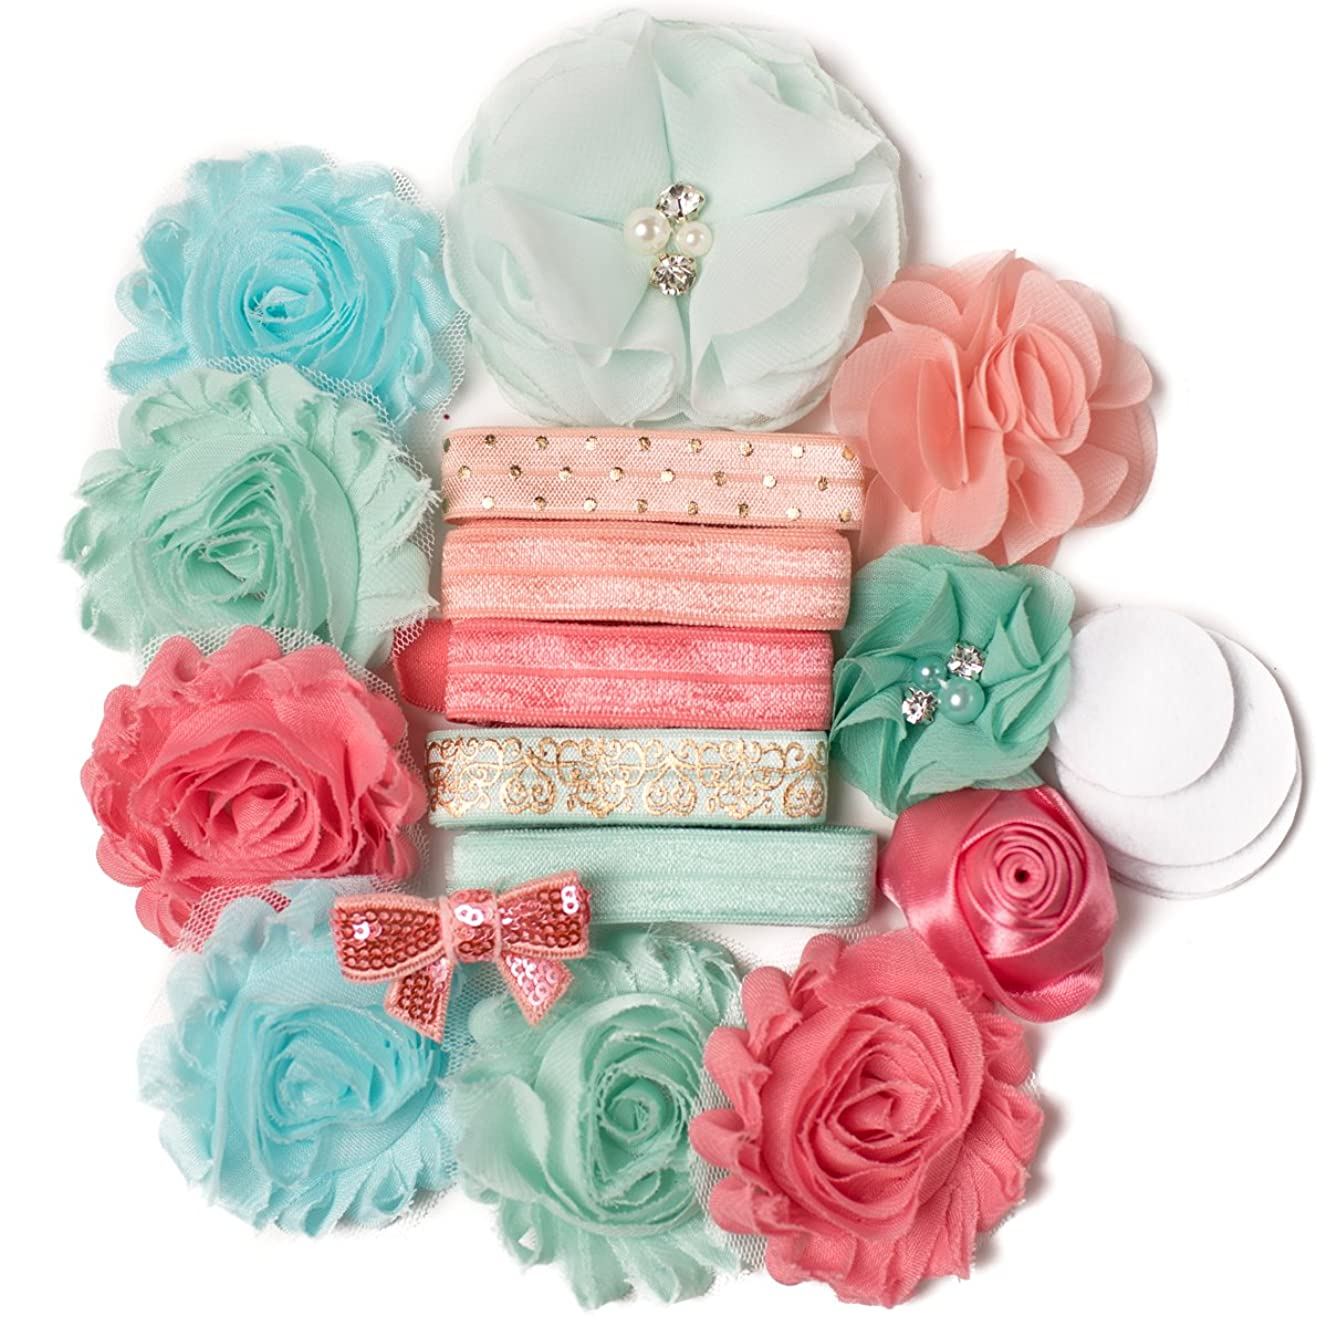 French Riviera : Mint Green & Peach Coral Sparkle DIY Deluxe Mini Headband Kit MAKES 5-10 Headband Hair Accessories : Shabby Chiffon Craft Roses FOE Fold Over Elastic : Princess Parties & Baby Showers